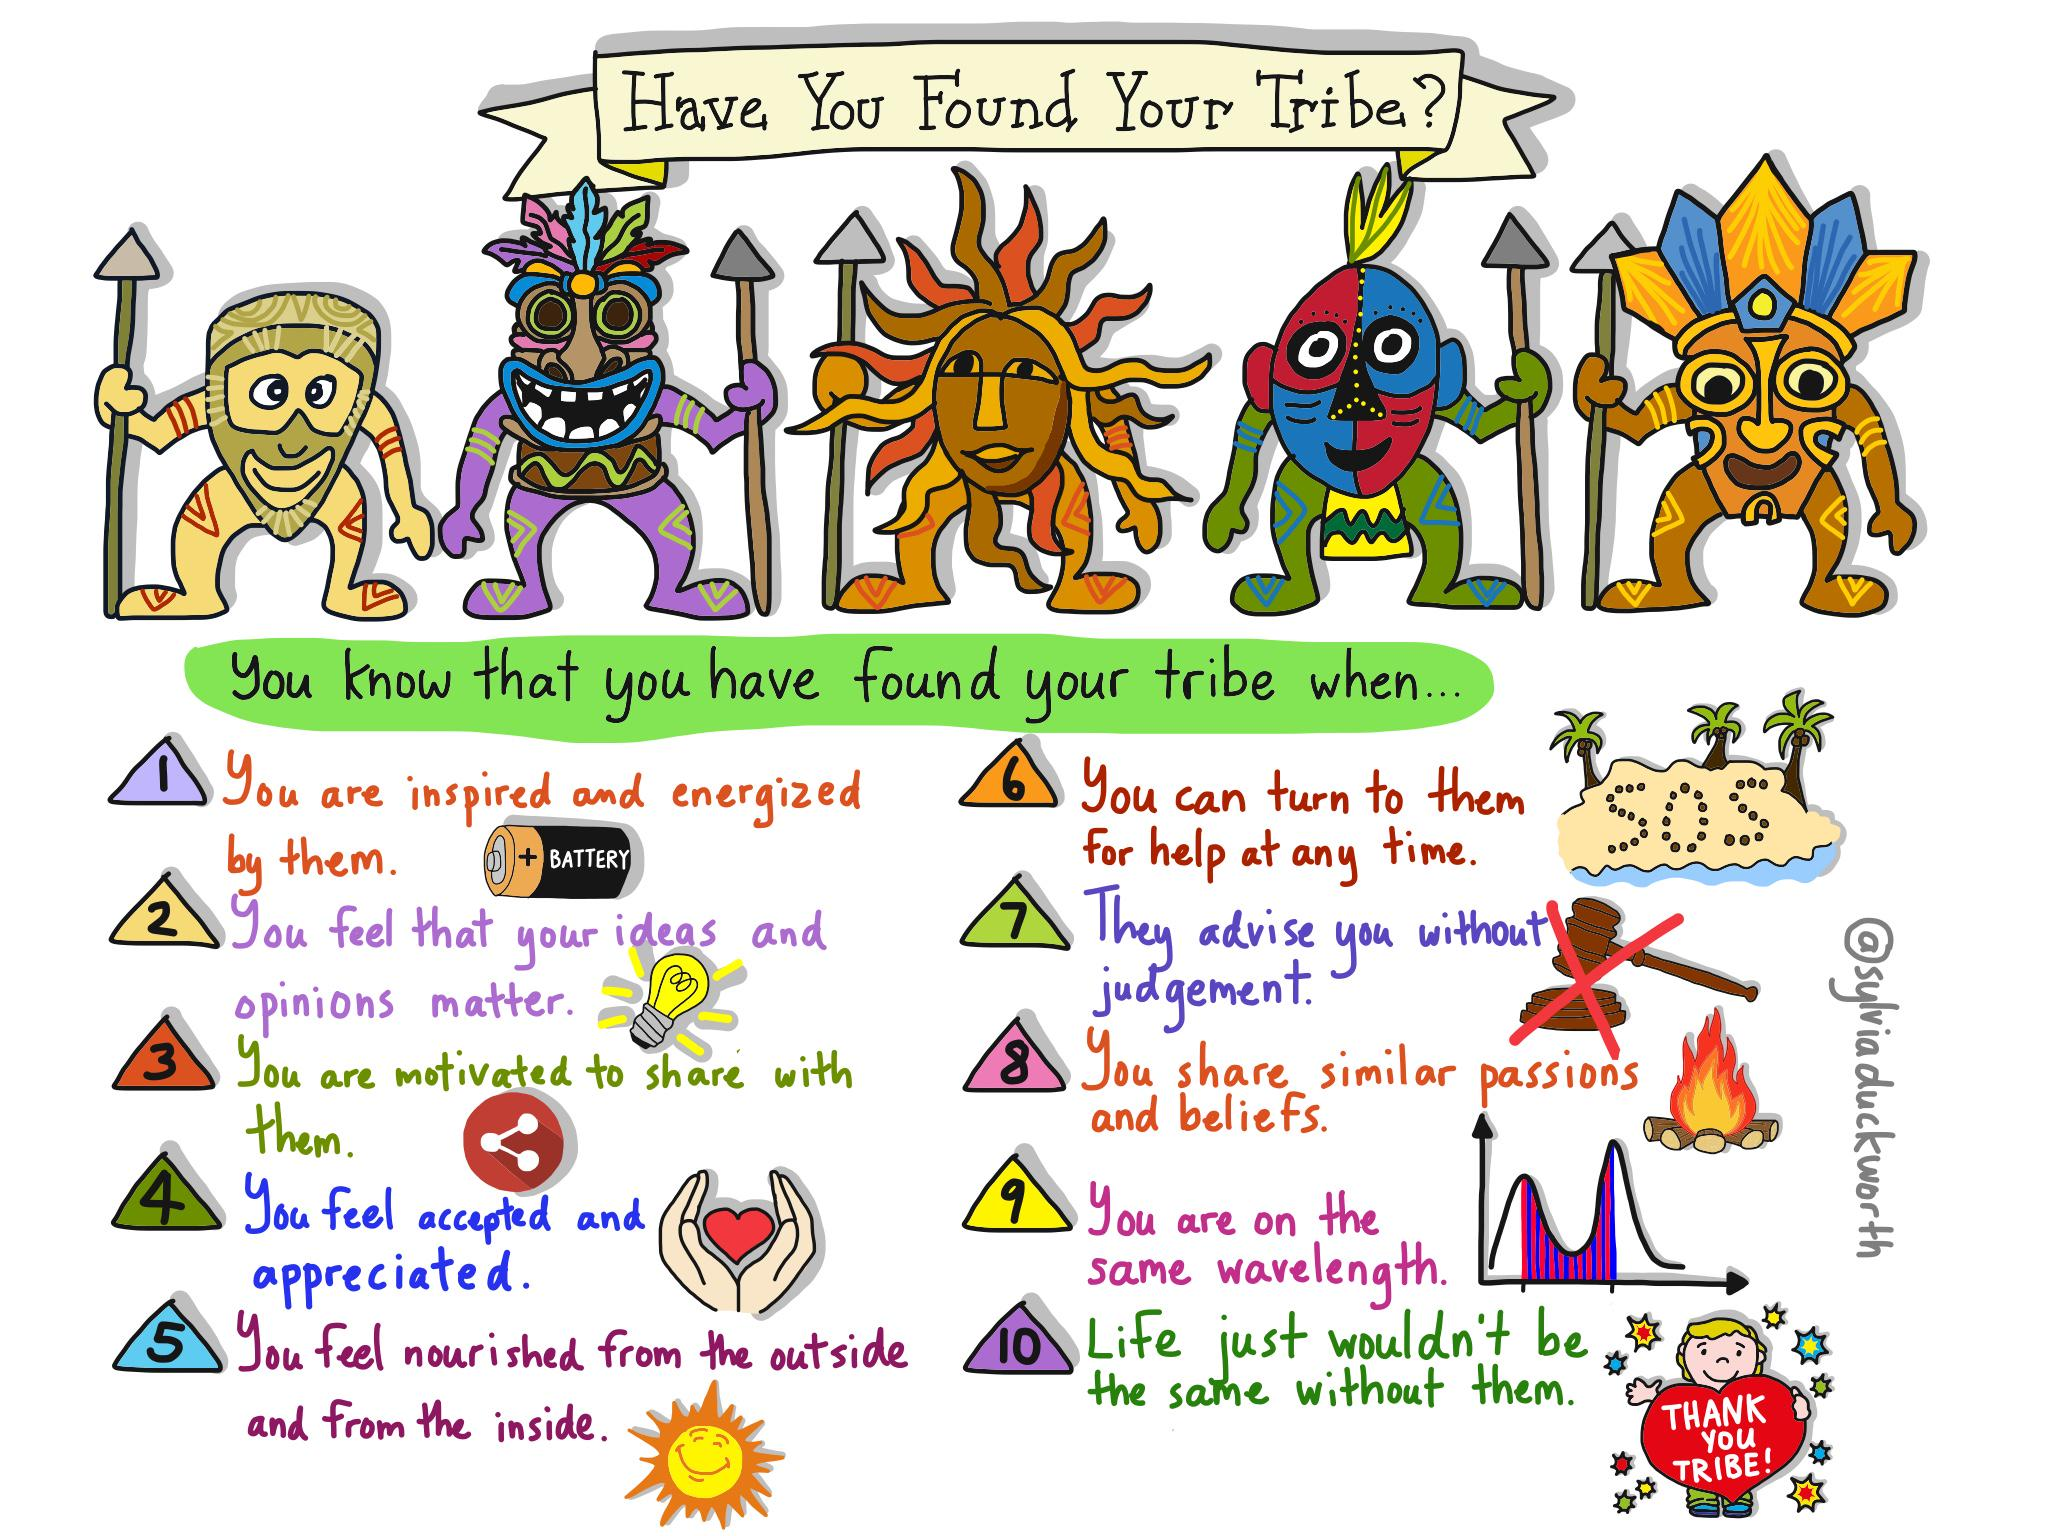 Have you found your tribe? http://t.co/wbo6Vbl9QW by @sylviaduckworth #edchat #pln